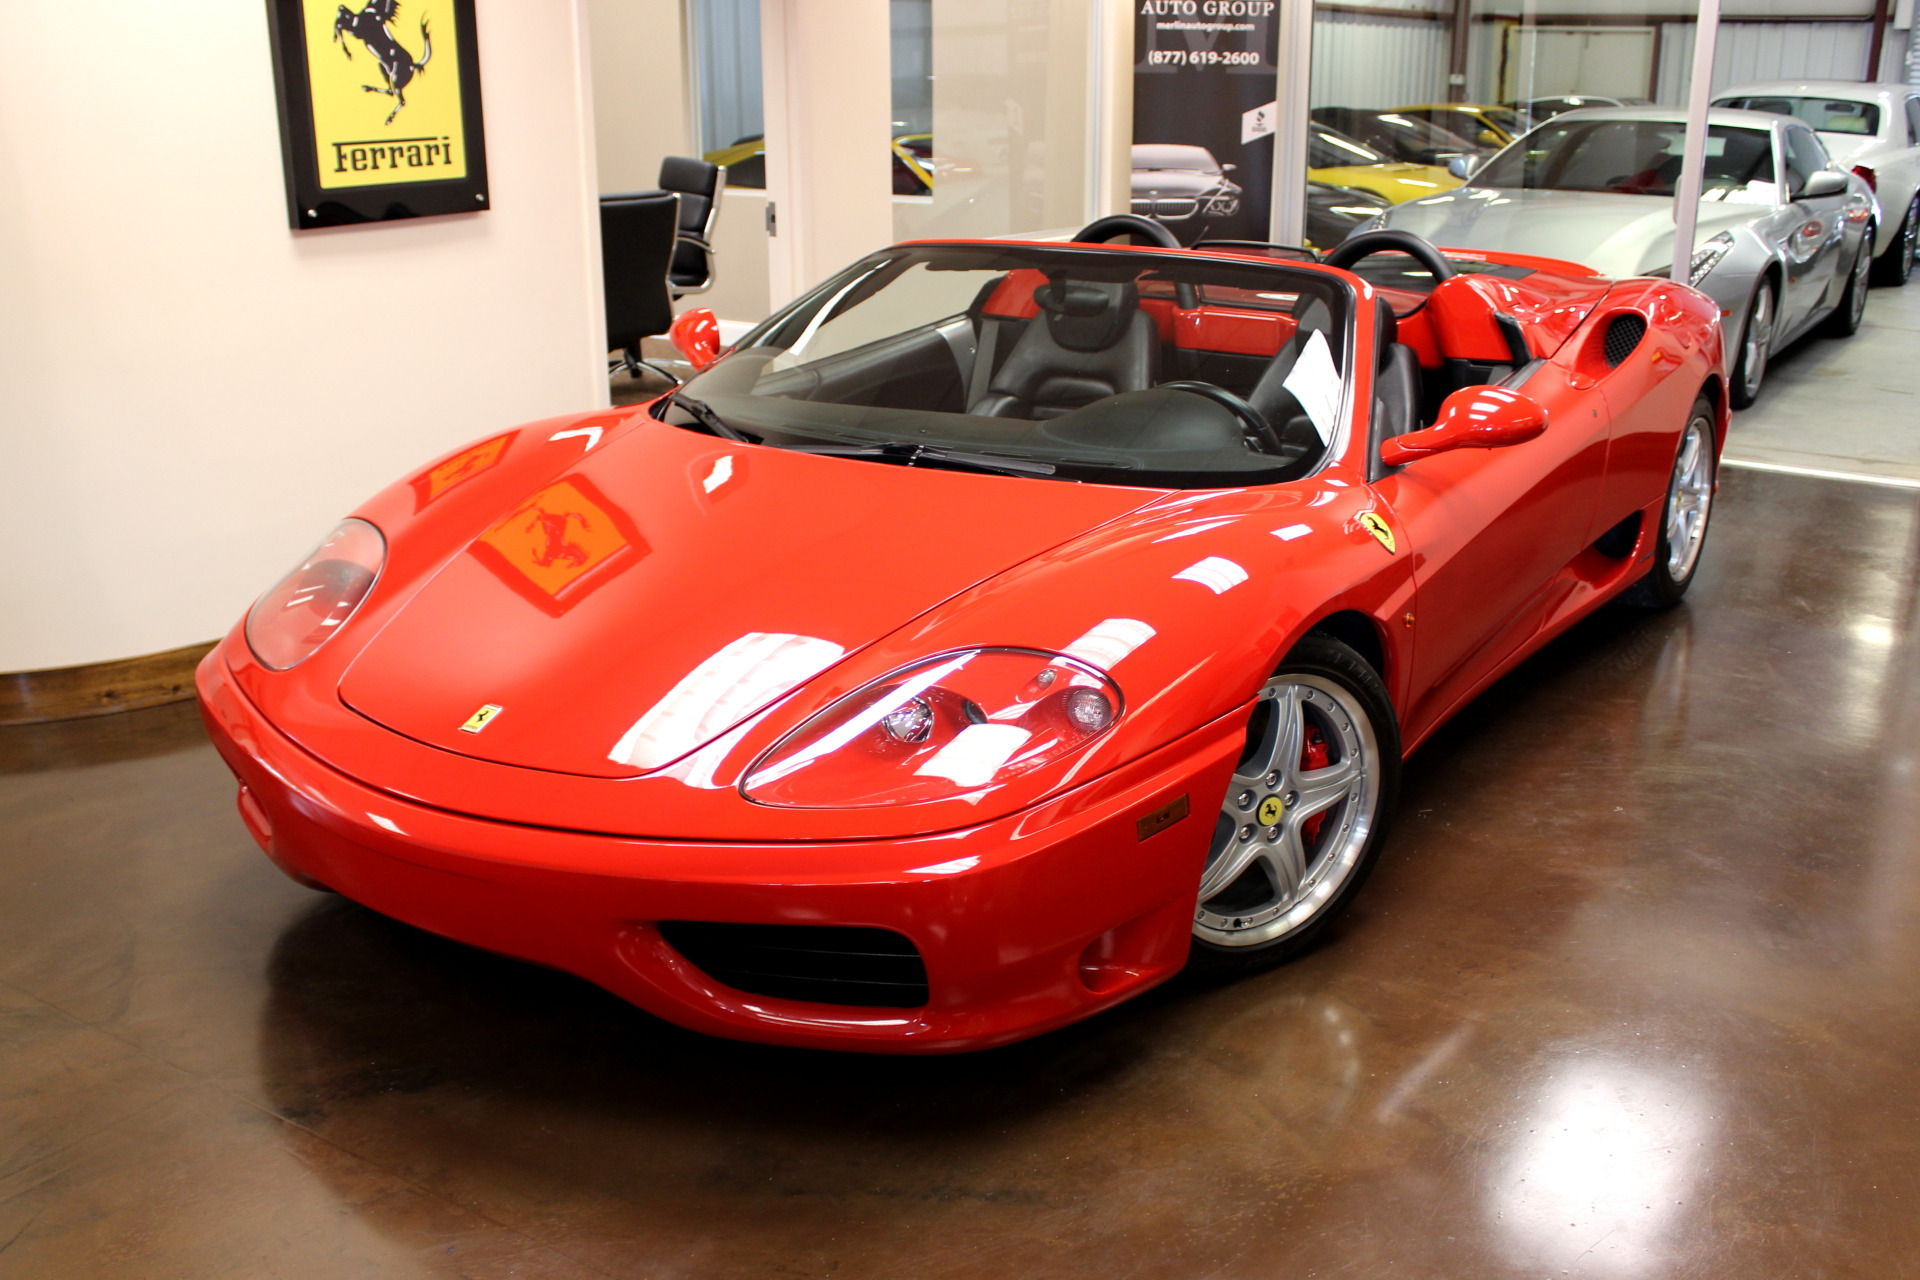 Ferrari 360 Spider Convertible 2 Door Ebay